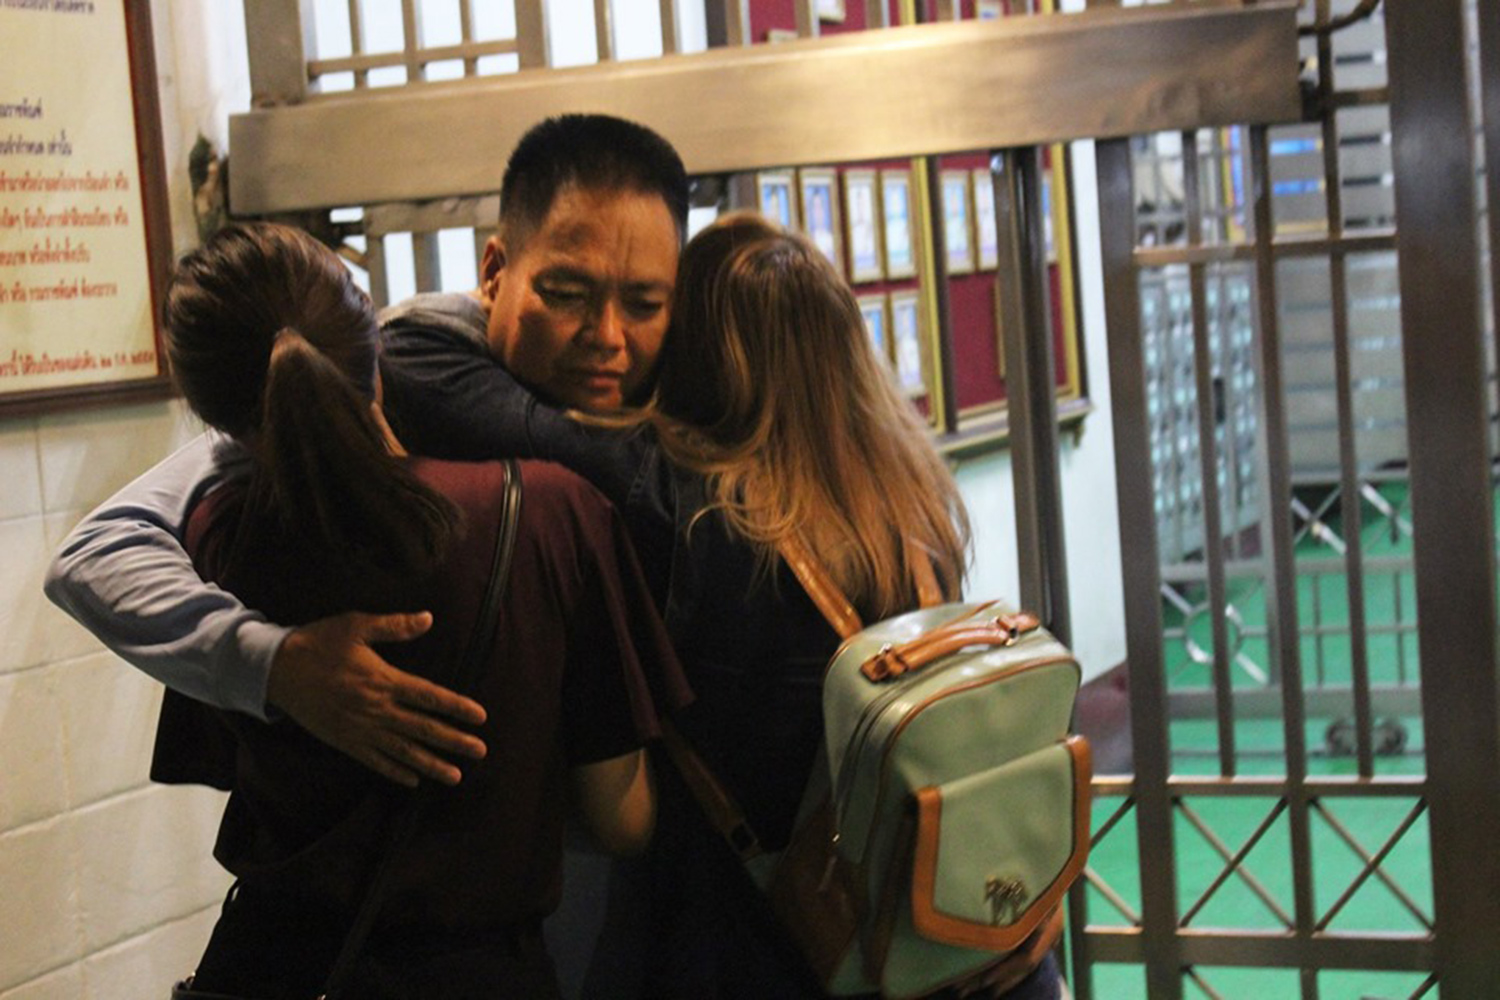 Siraphop Kornaroot hugs his daughters after his release from the Bangkok Remand Prison on Tuesday. (Photo from @iLawClub Facebook account)